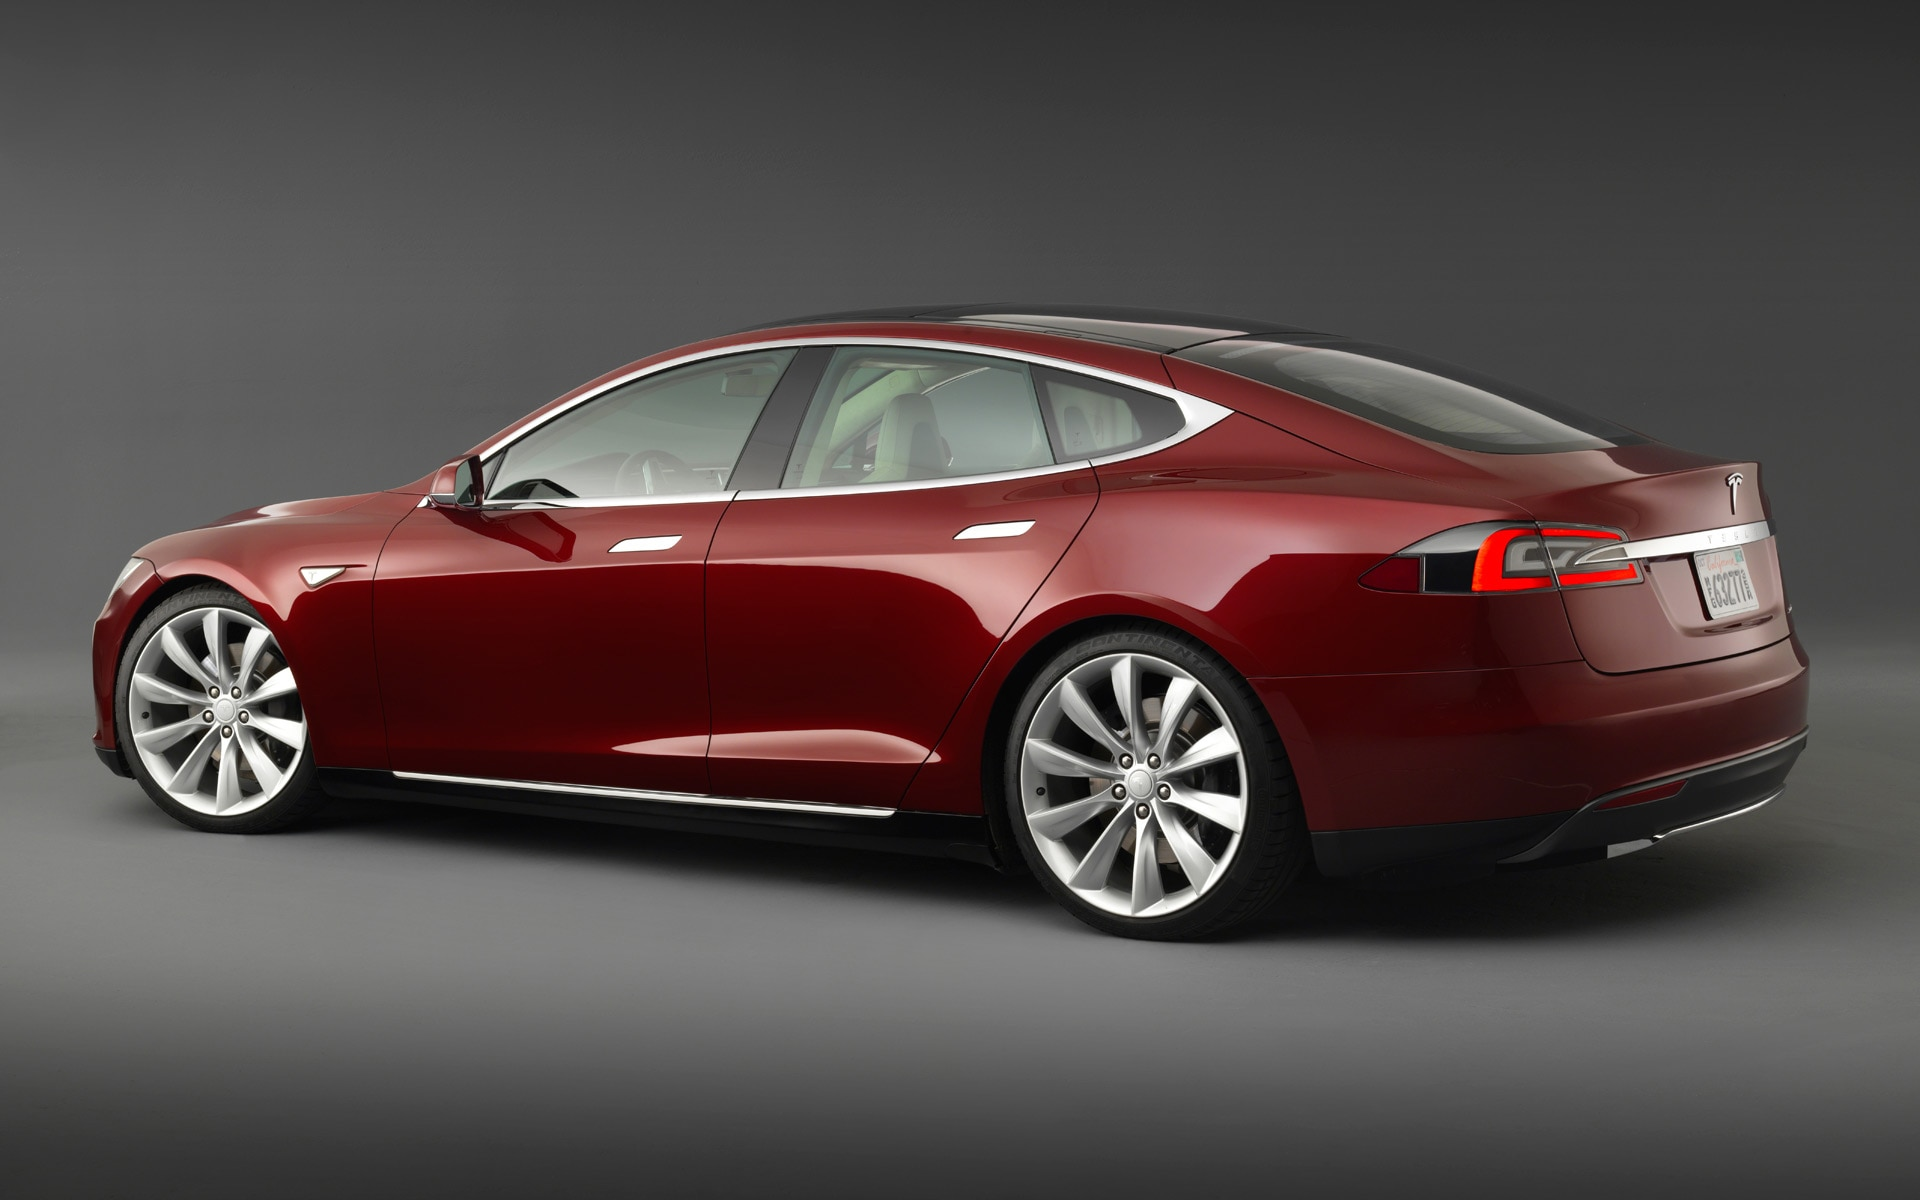 2013 Tesla Model S Red Rear Angle1